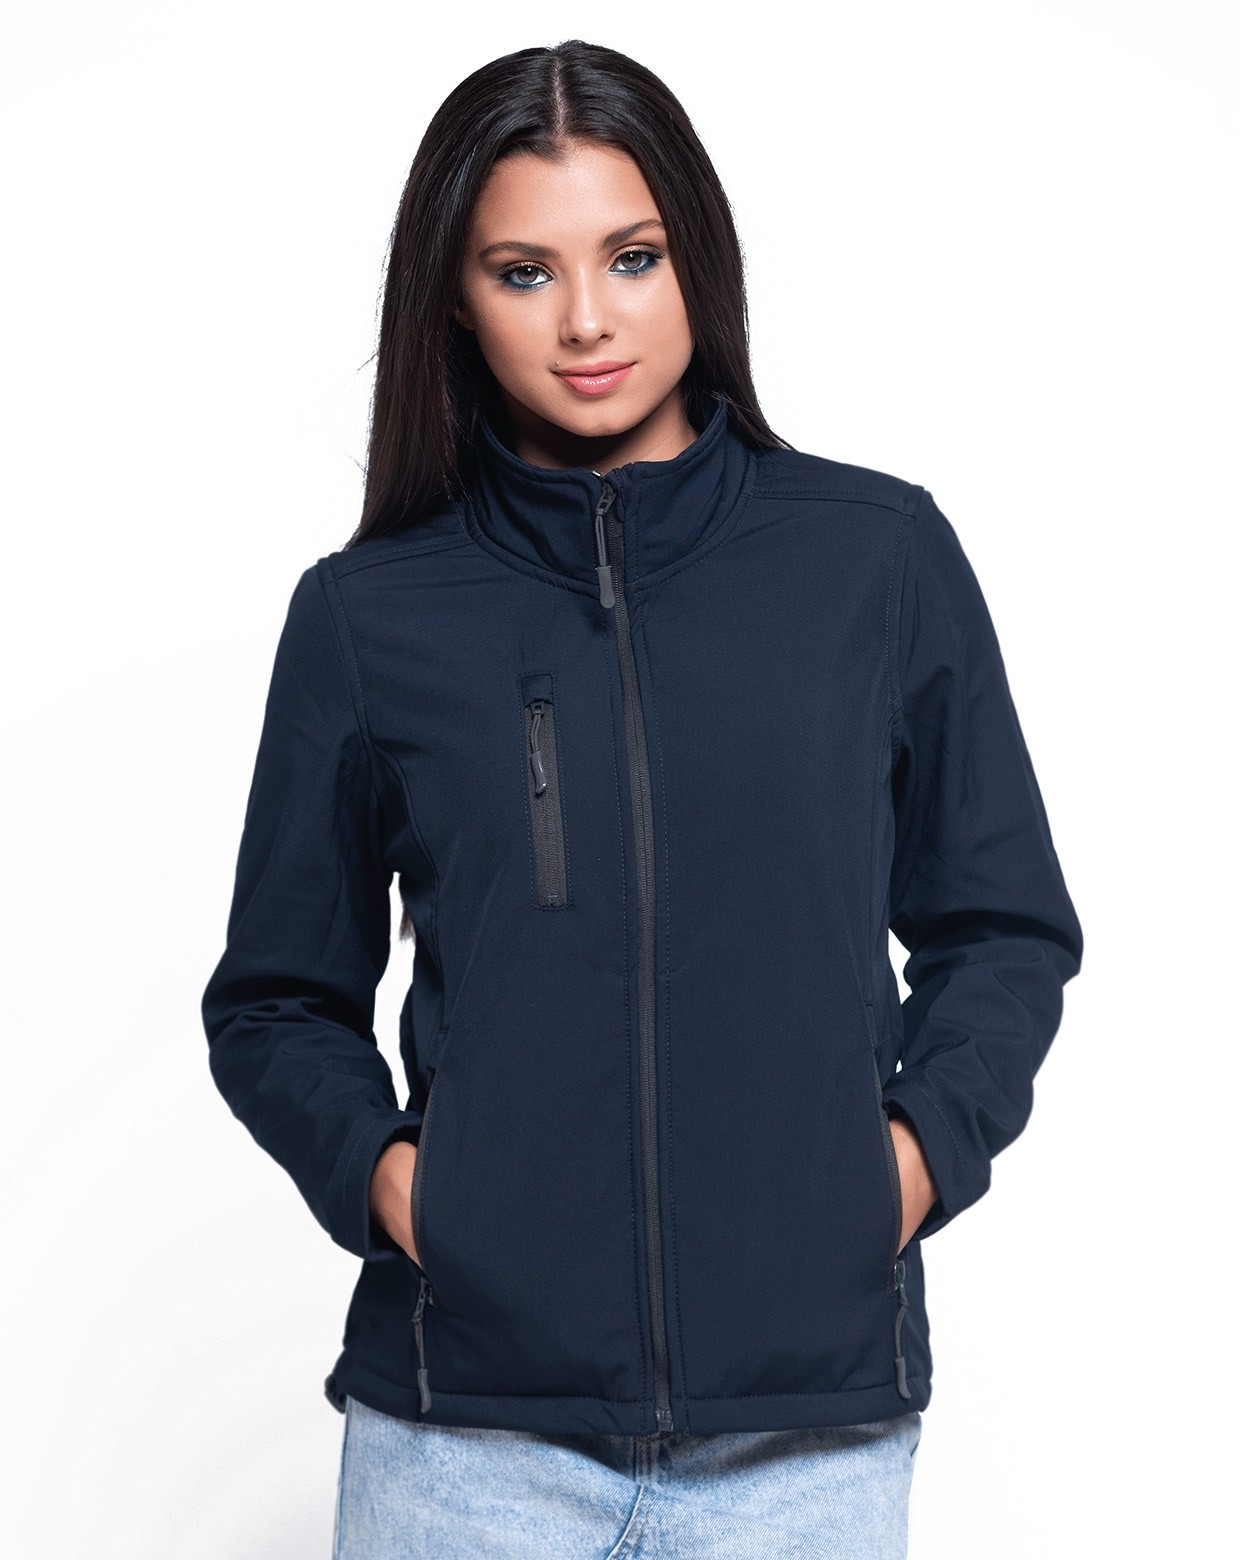 JHK SOFTSHELL LADY